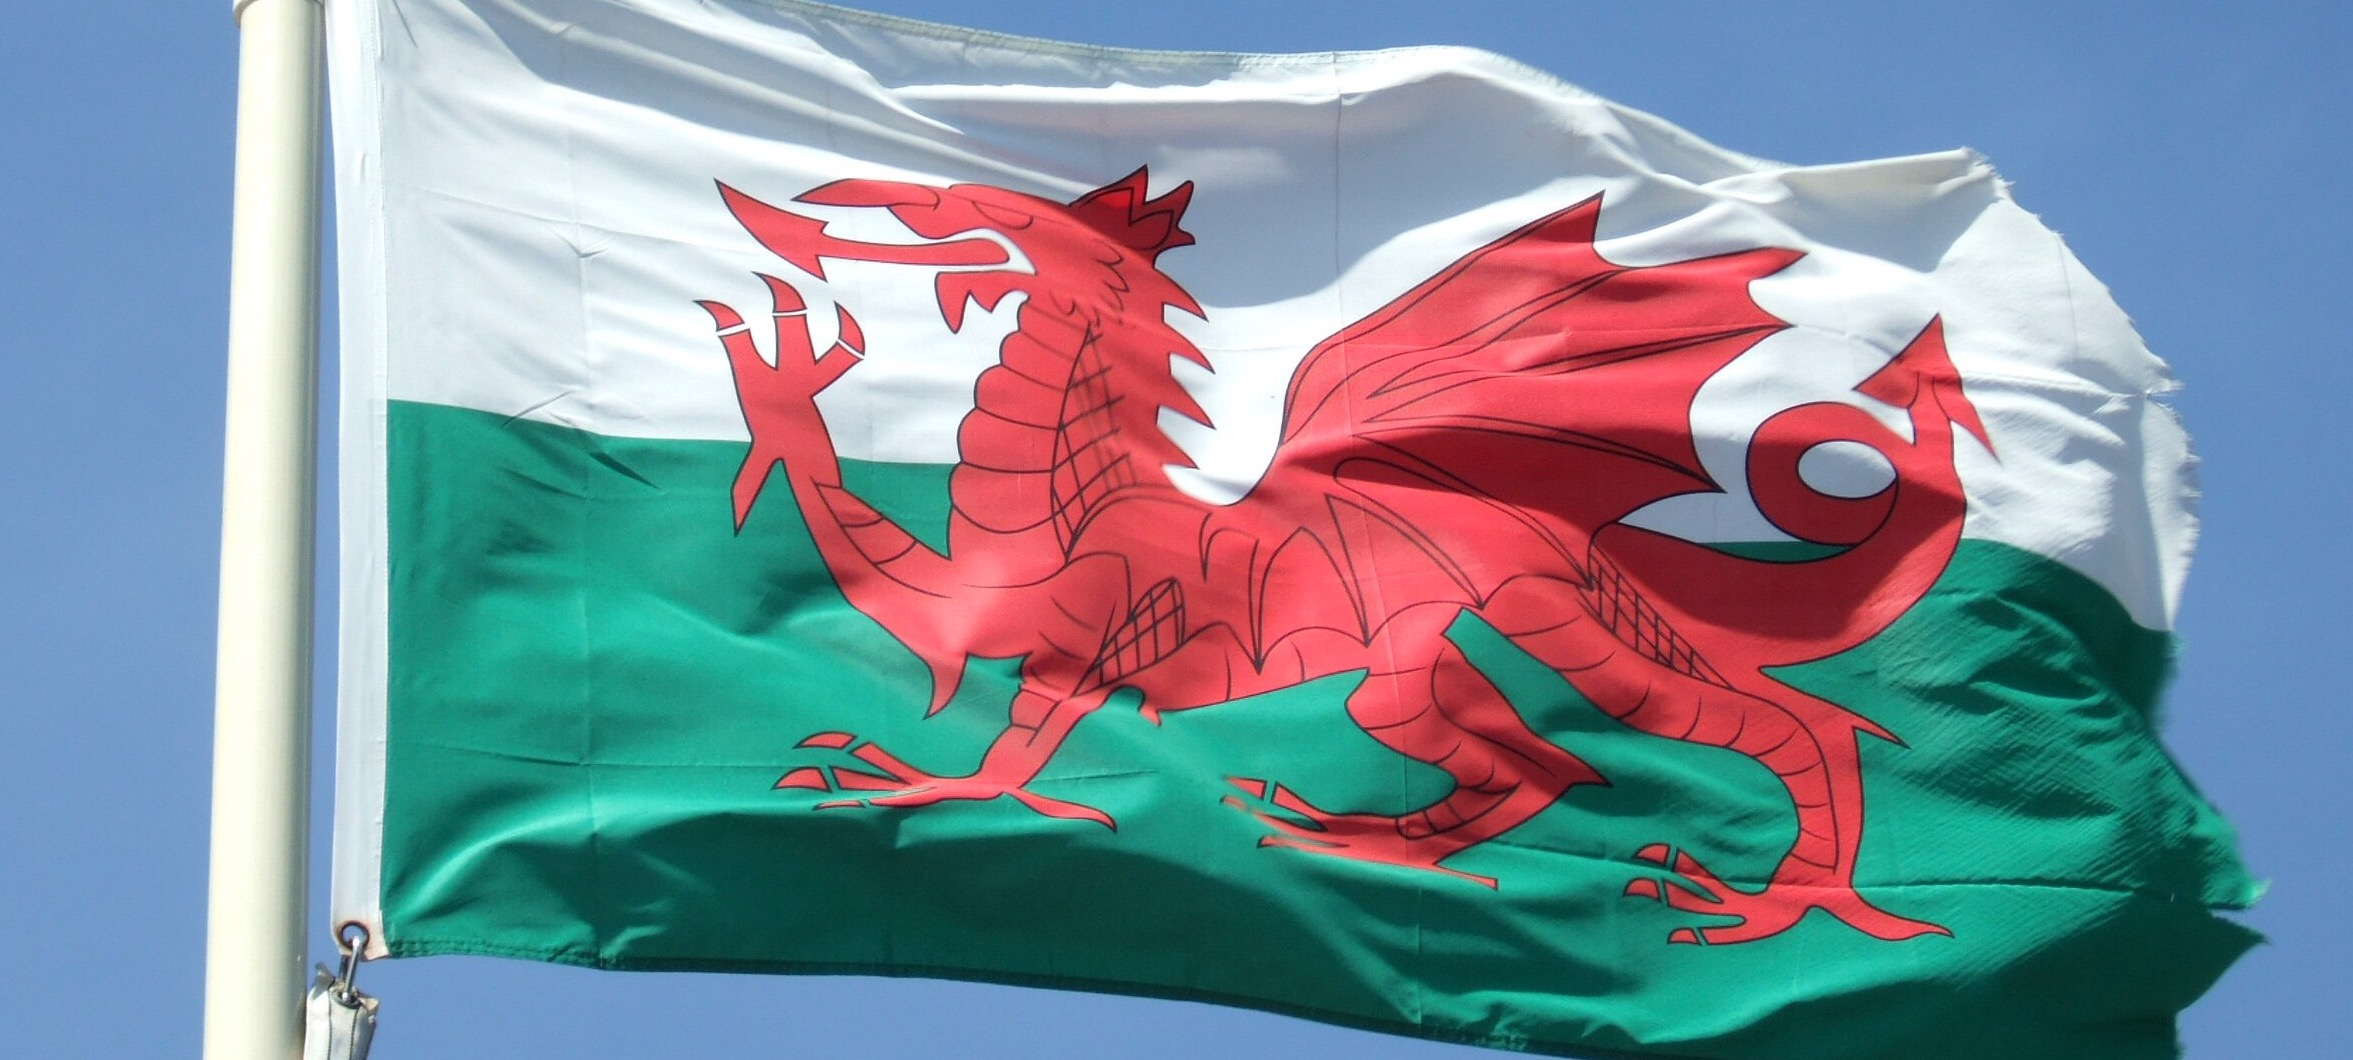 How do you say 'Happy St David's Day' in Welsh?